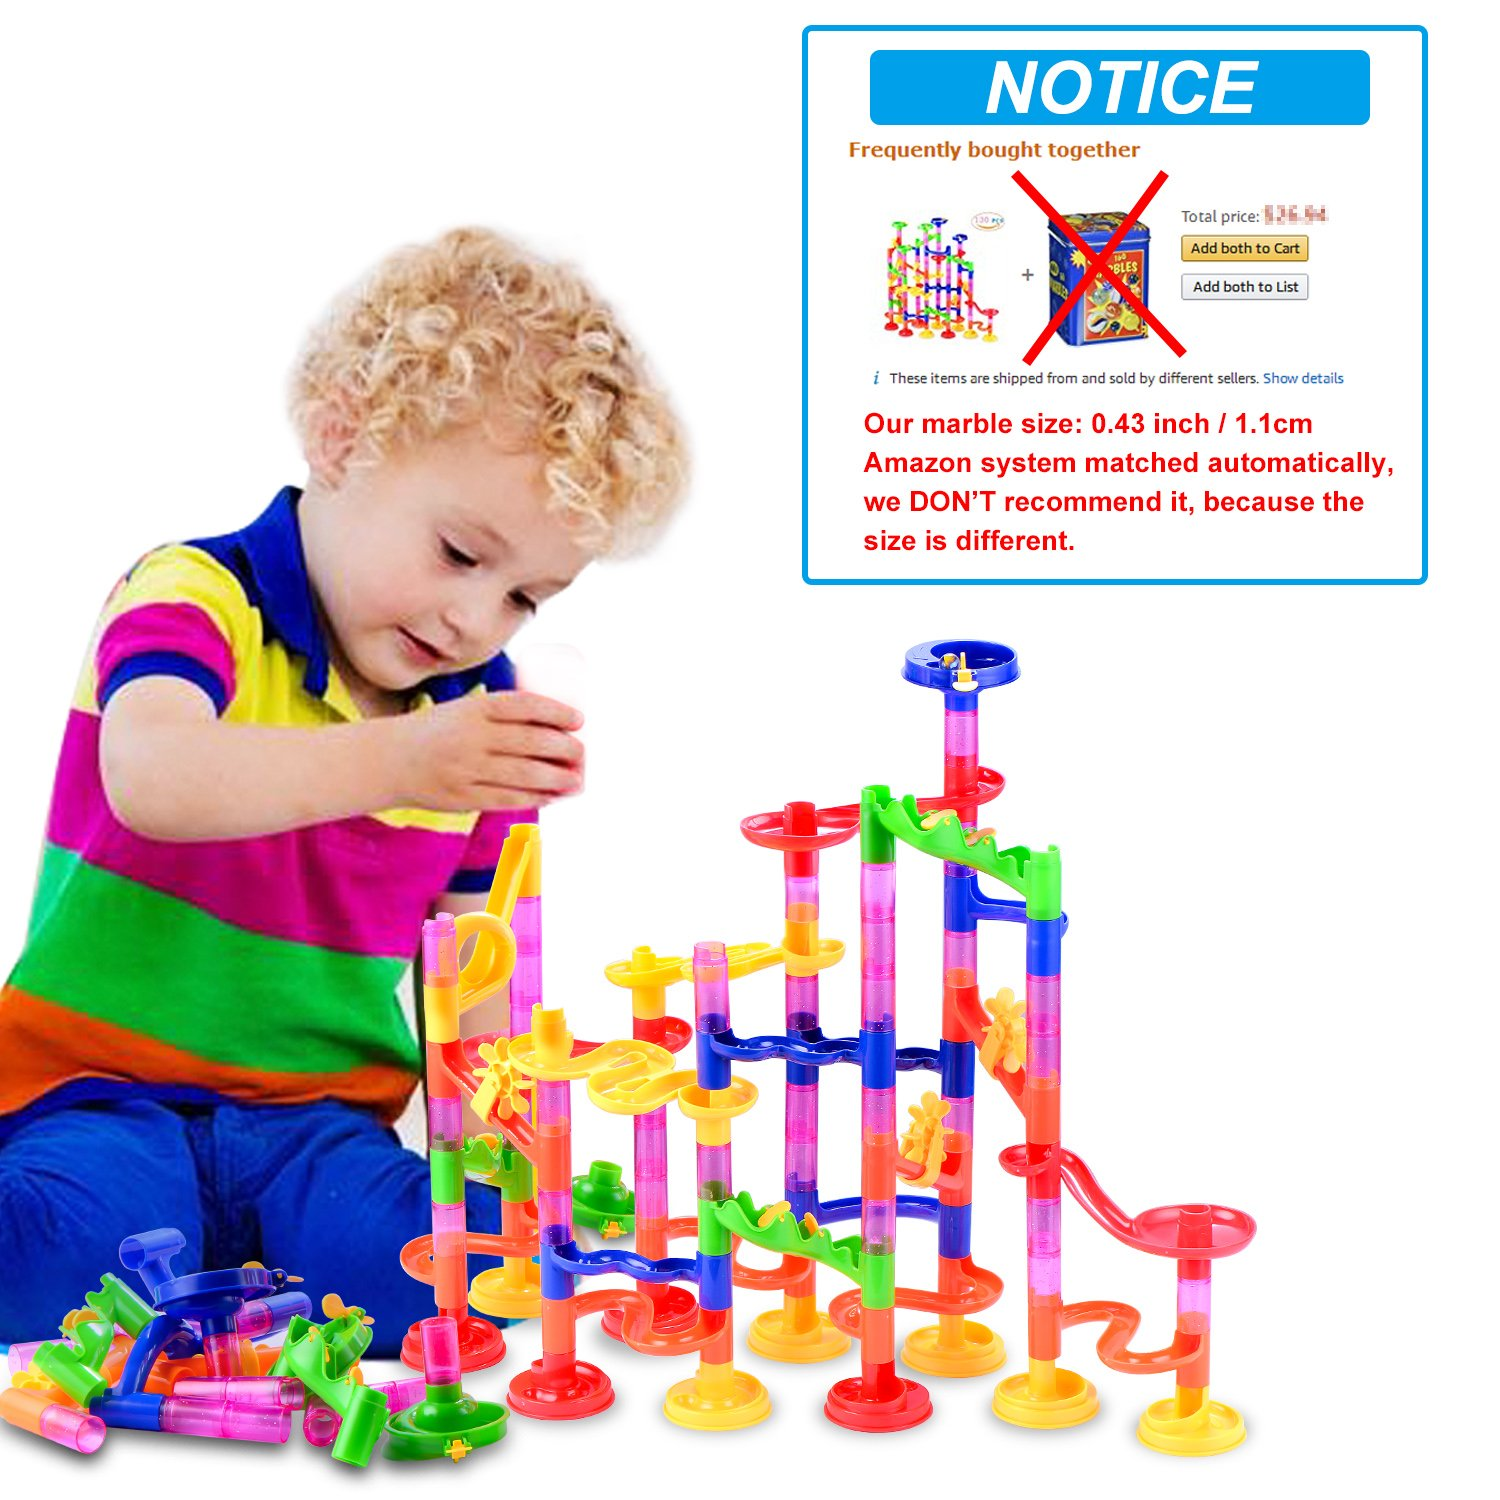 130Pcs Educational Construction Maze Block Toy Set with Glass Marbles for Kids and Parent-Child Game HUA XU TOYS FACTORY Gifts2U Marble Run Toy